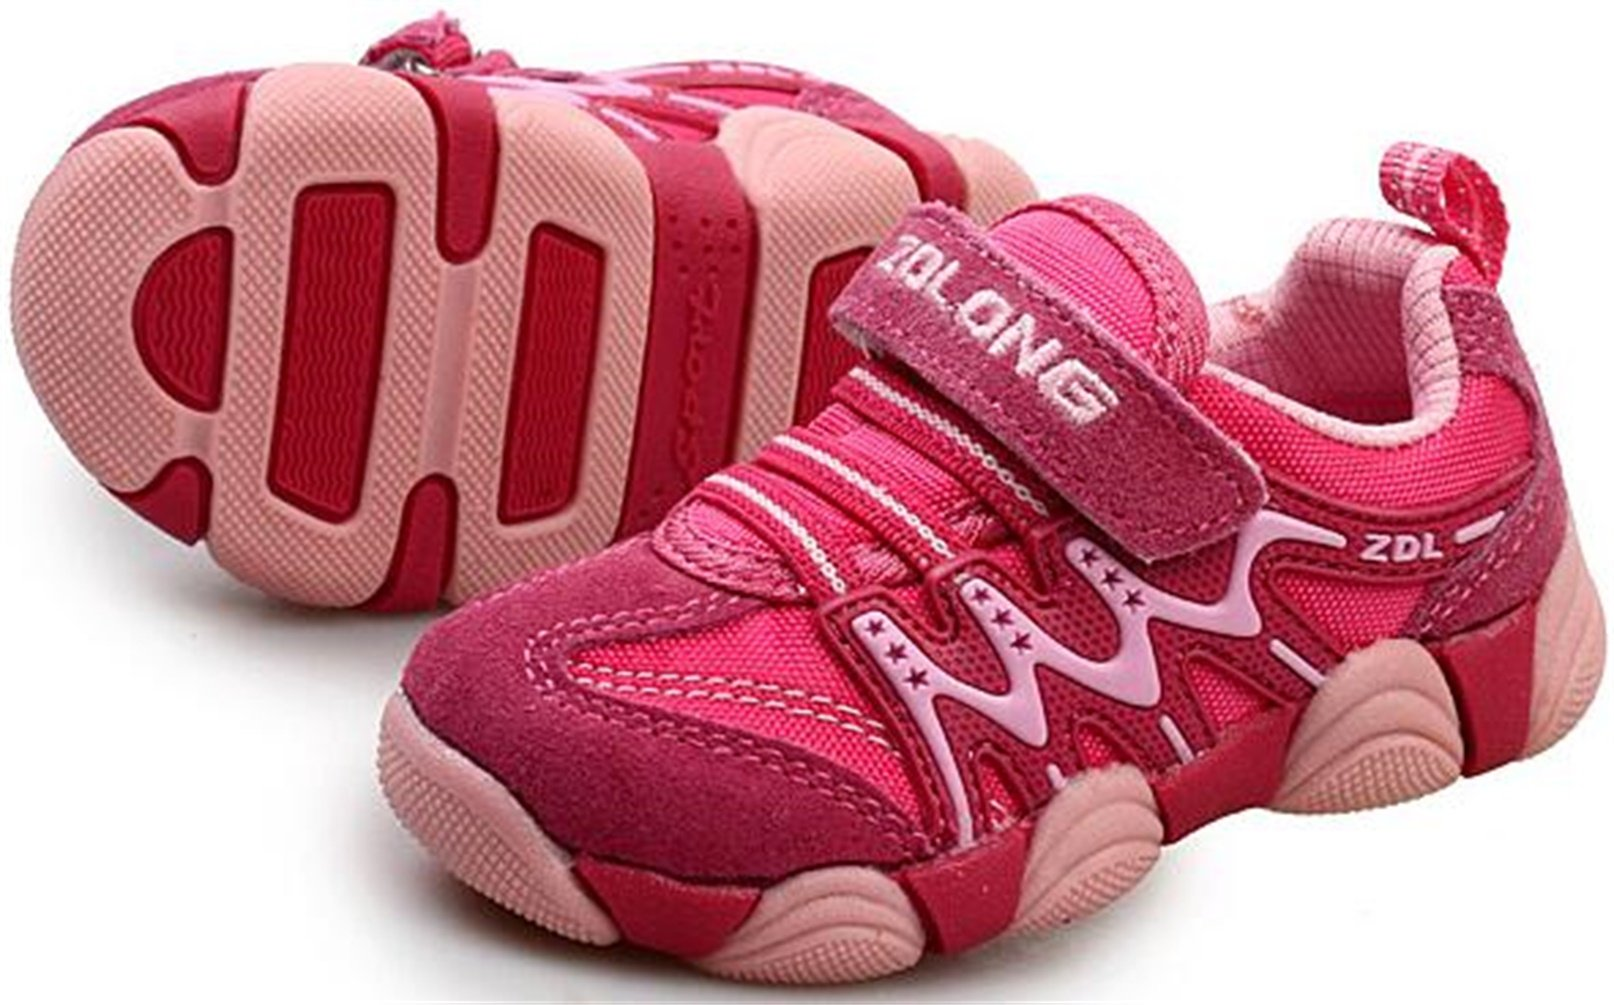 PPXID Boy's Girl's Athletic Lace up Casual Sneaker Running Shoes-Pink 11.5 US Size by PPXID (Image #2)